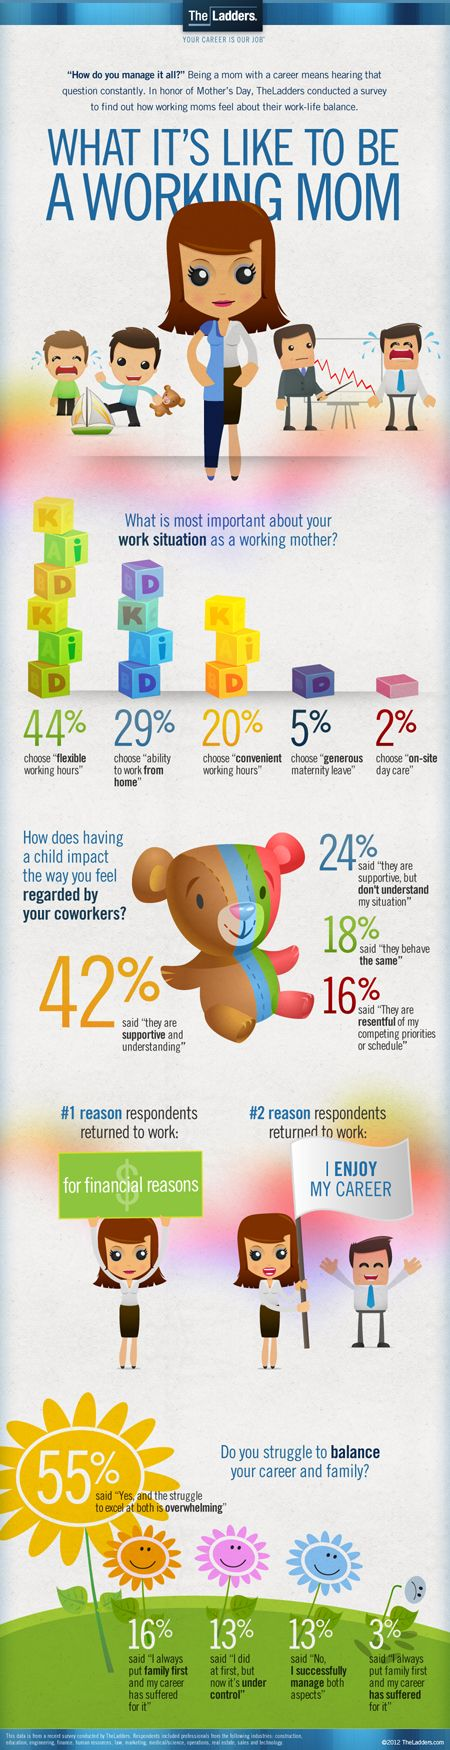 Working Mom Infograph from the Ladders